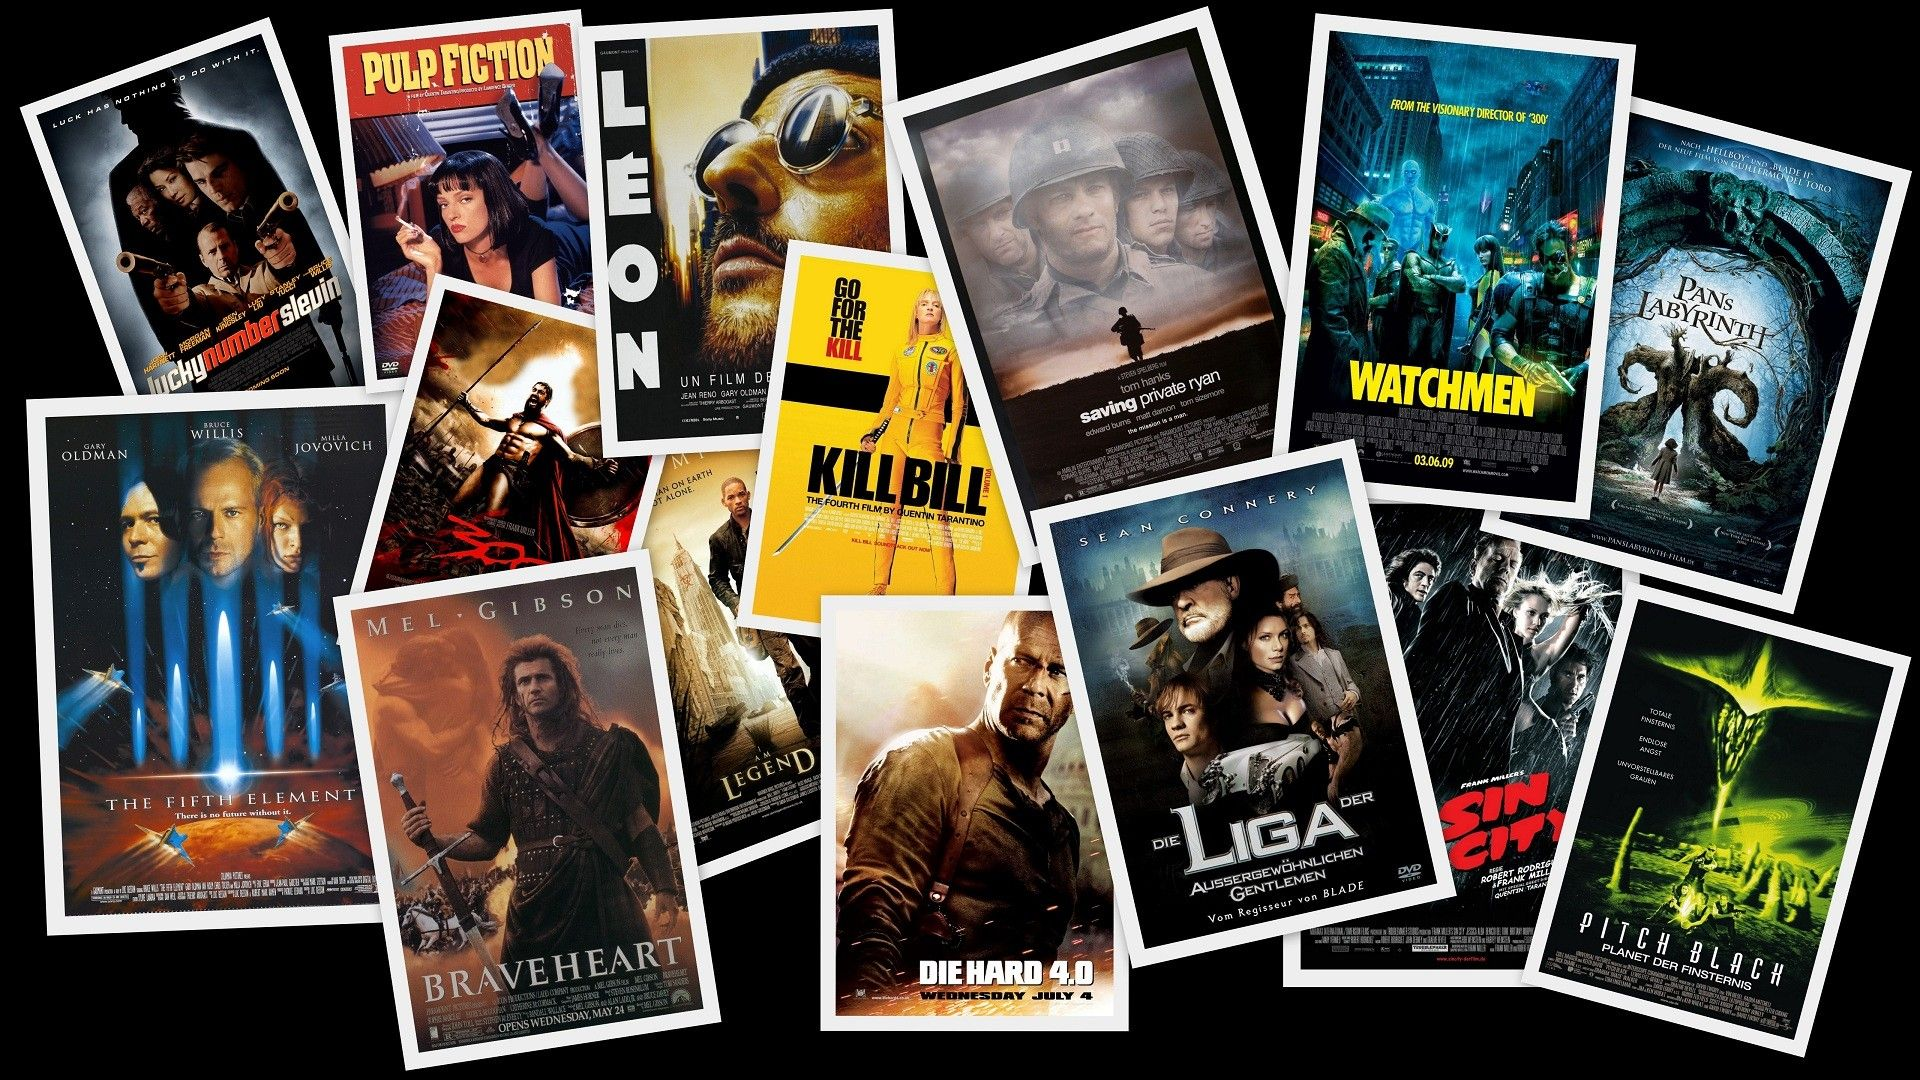 Movies digital art collage movie posters fan art wallpapers